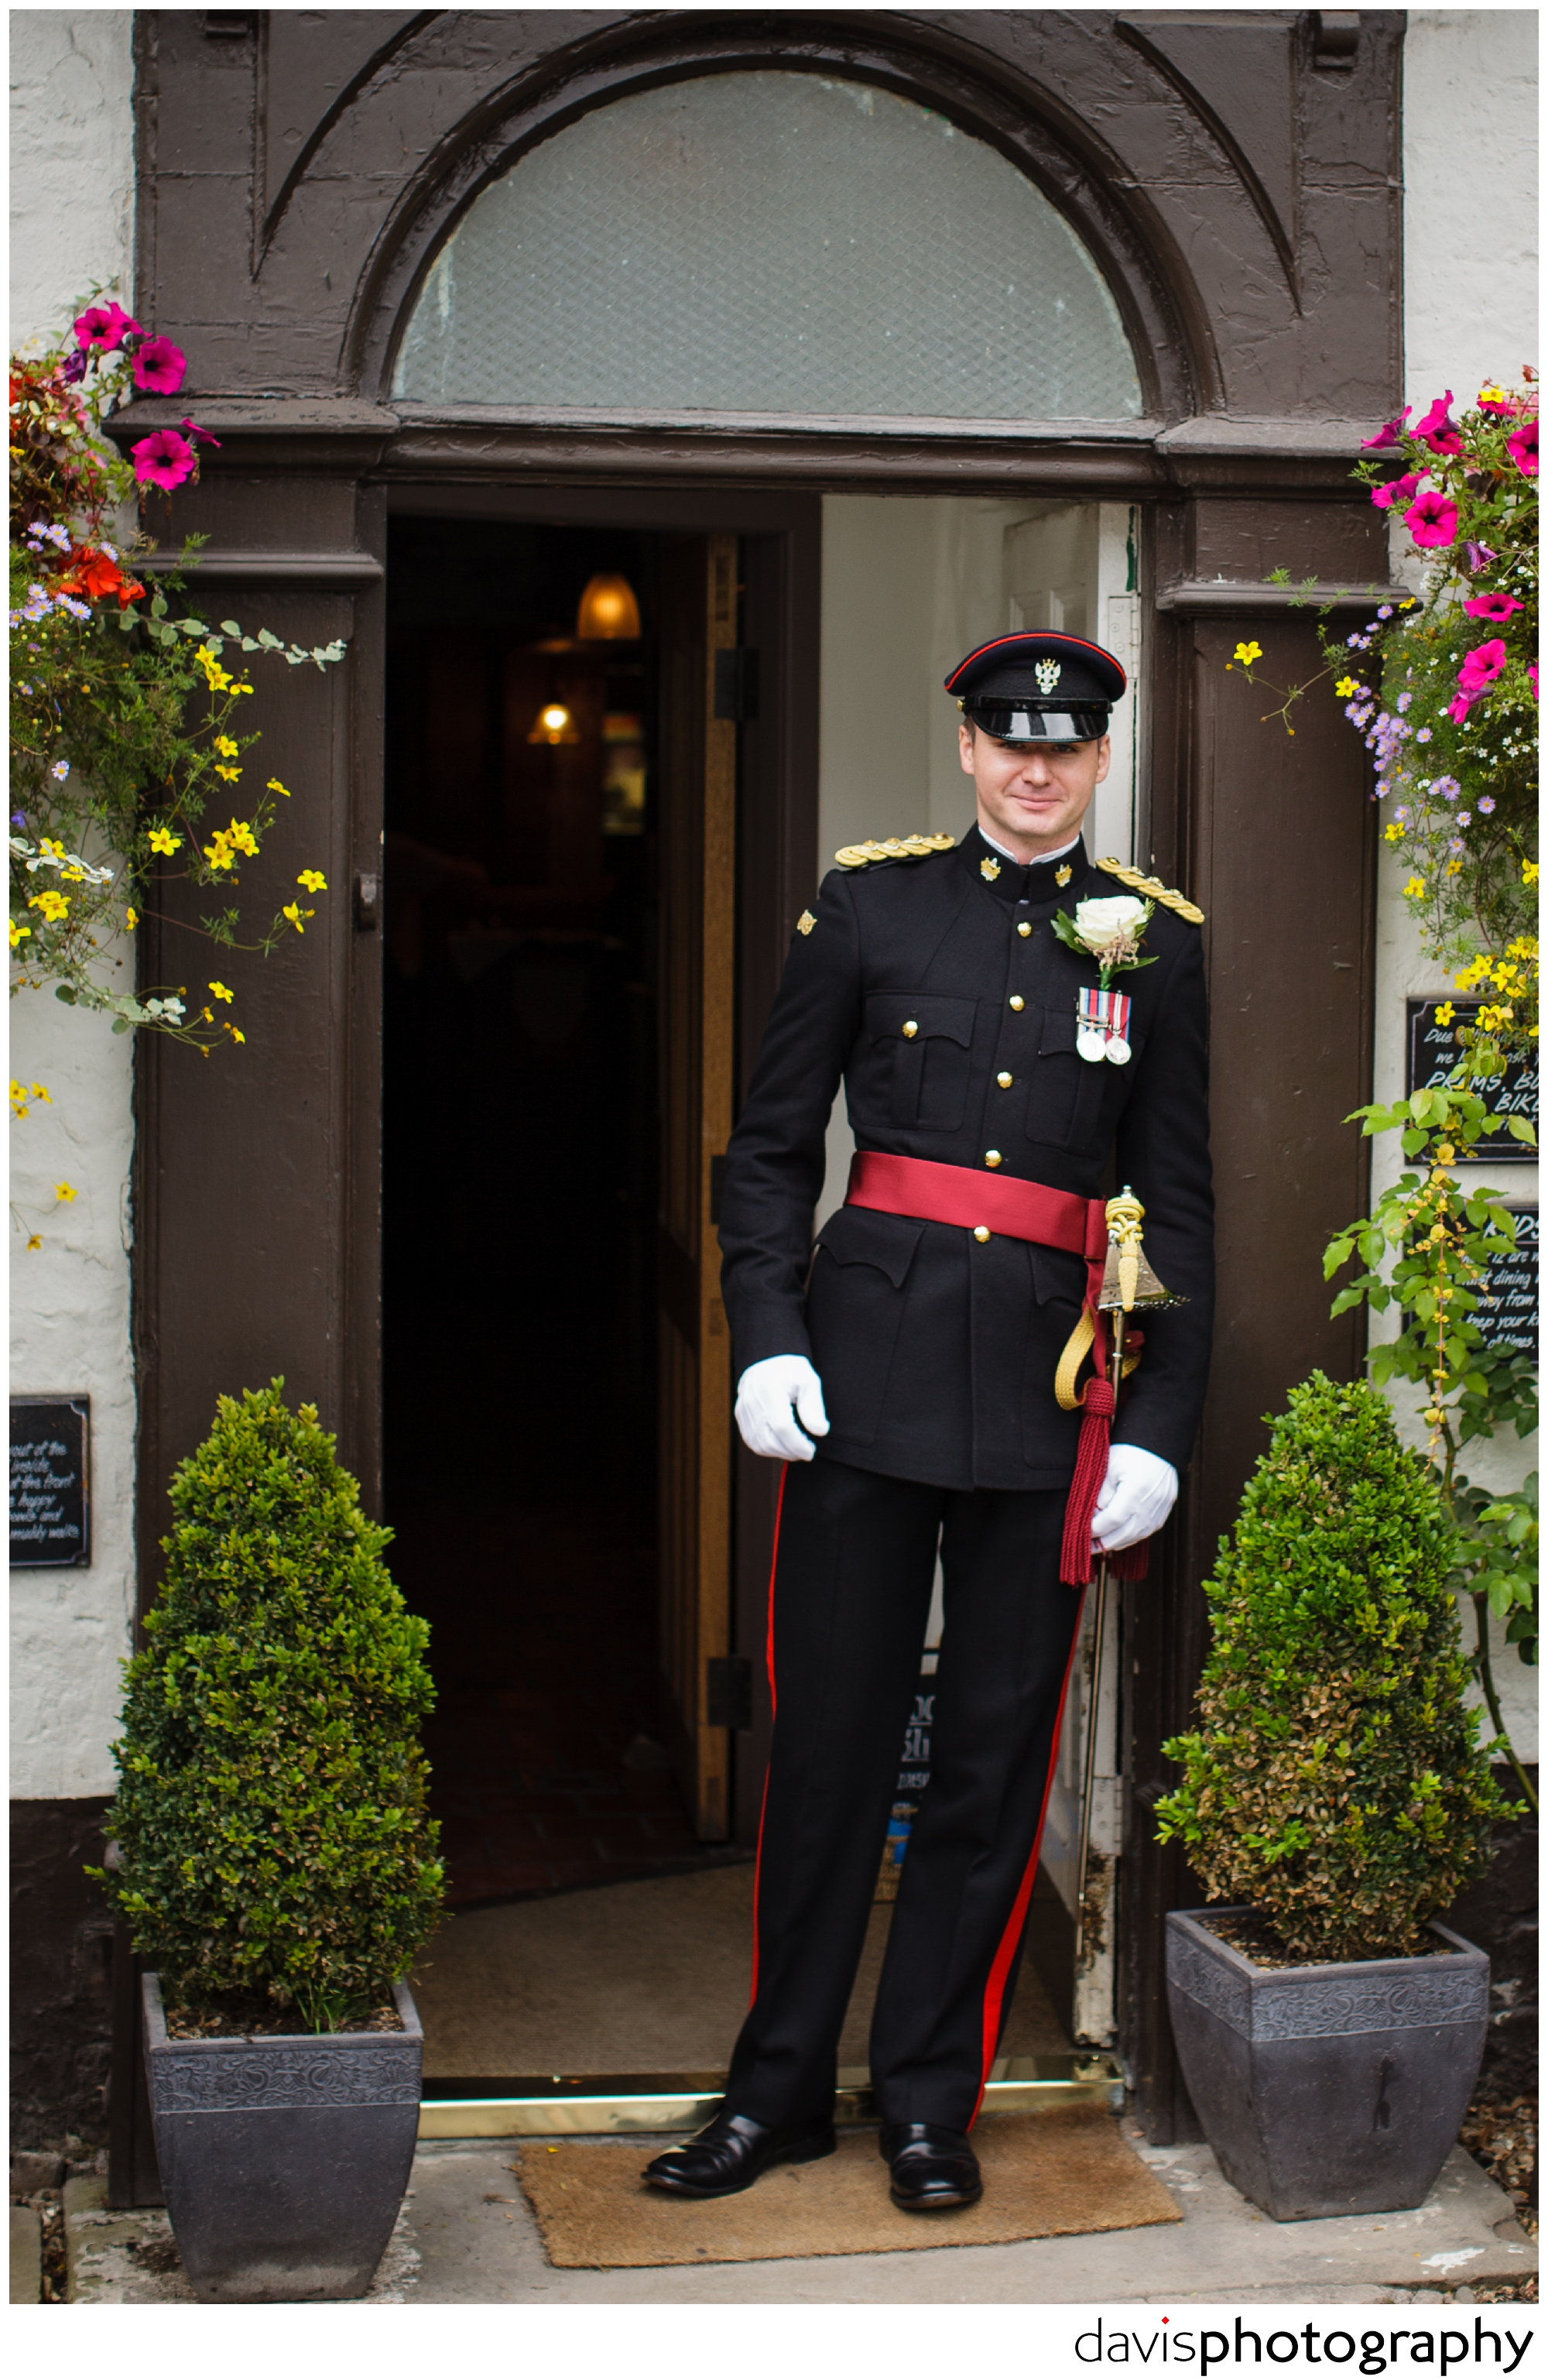 getting married in uniform,military wedding,